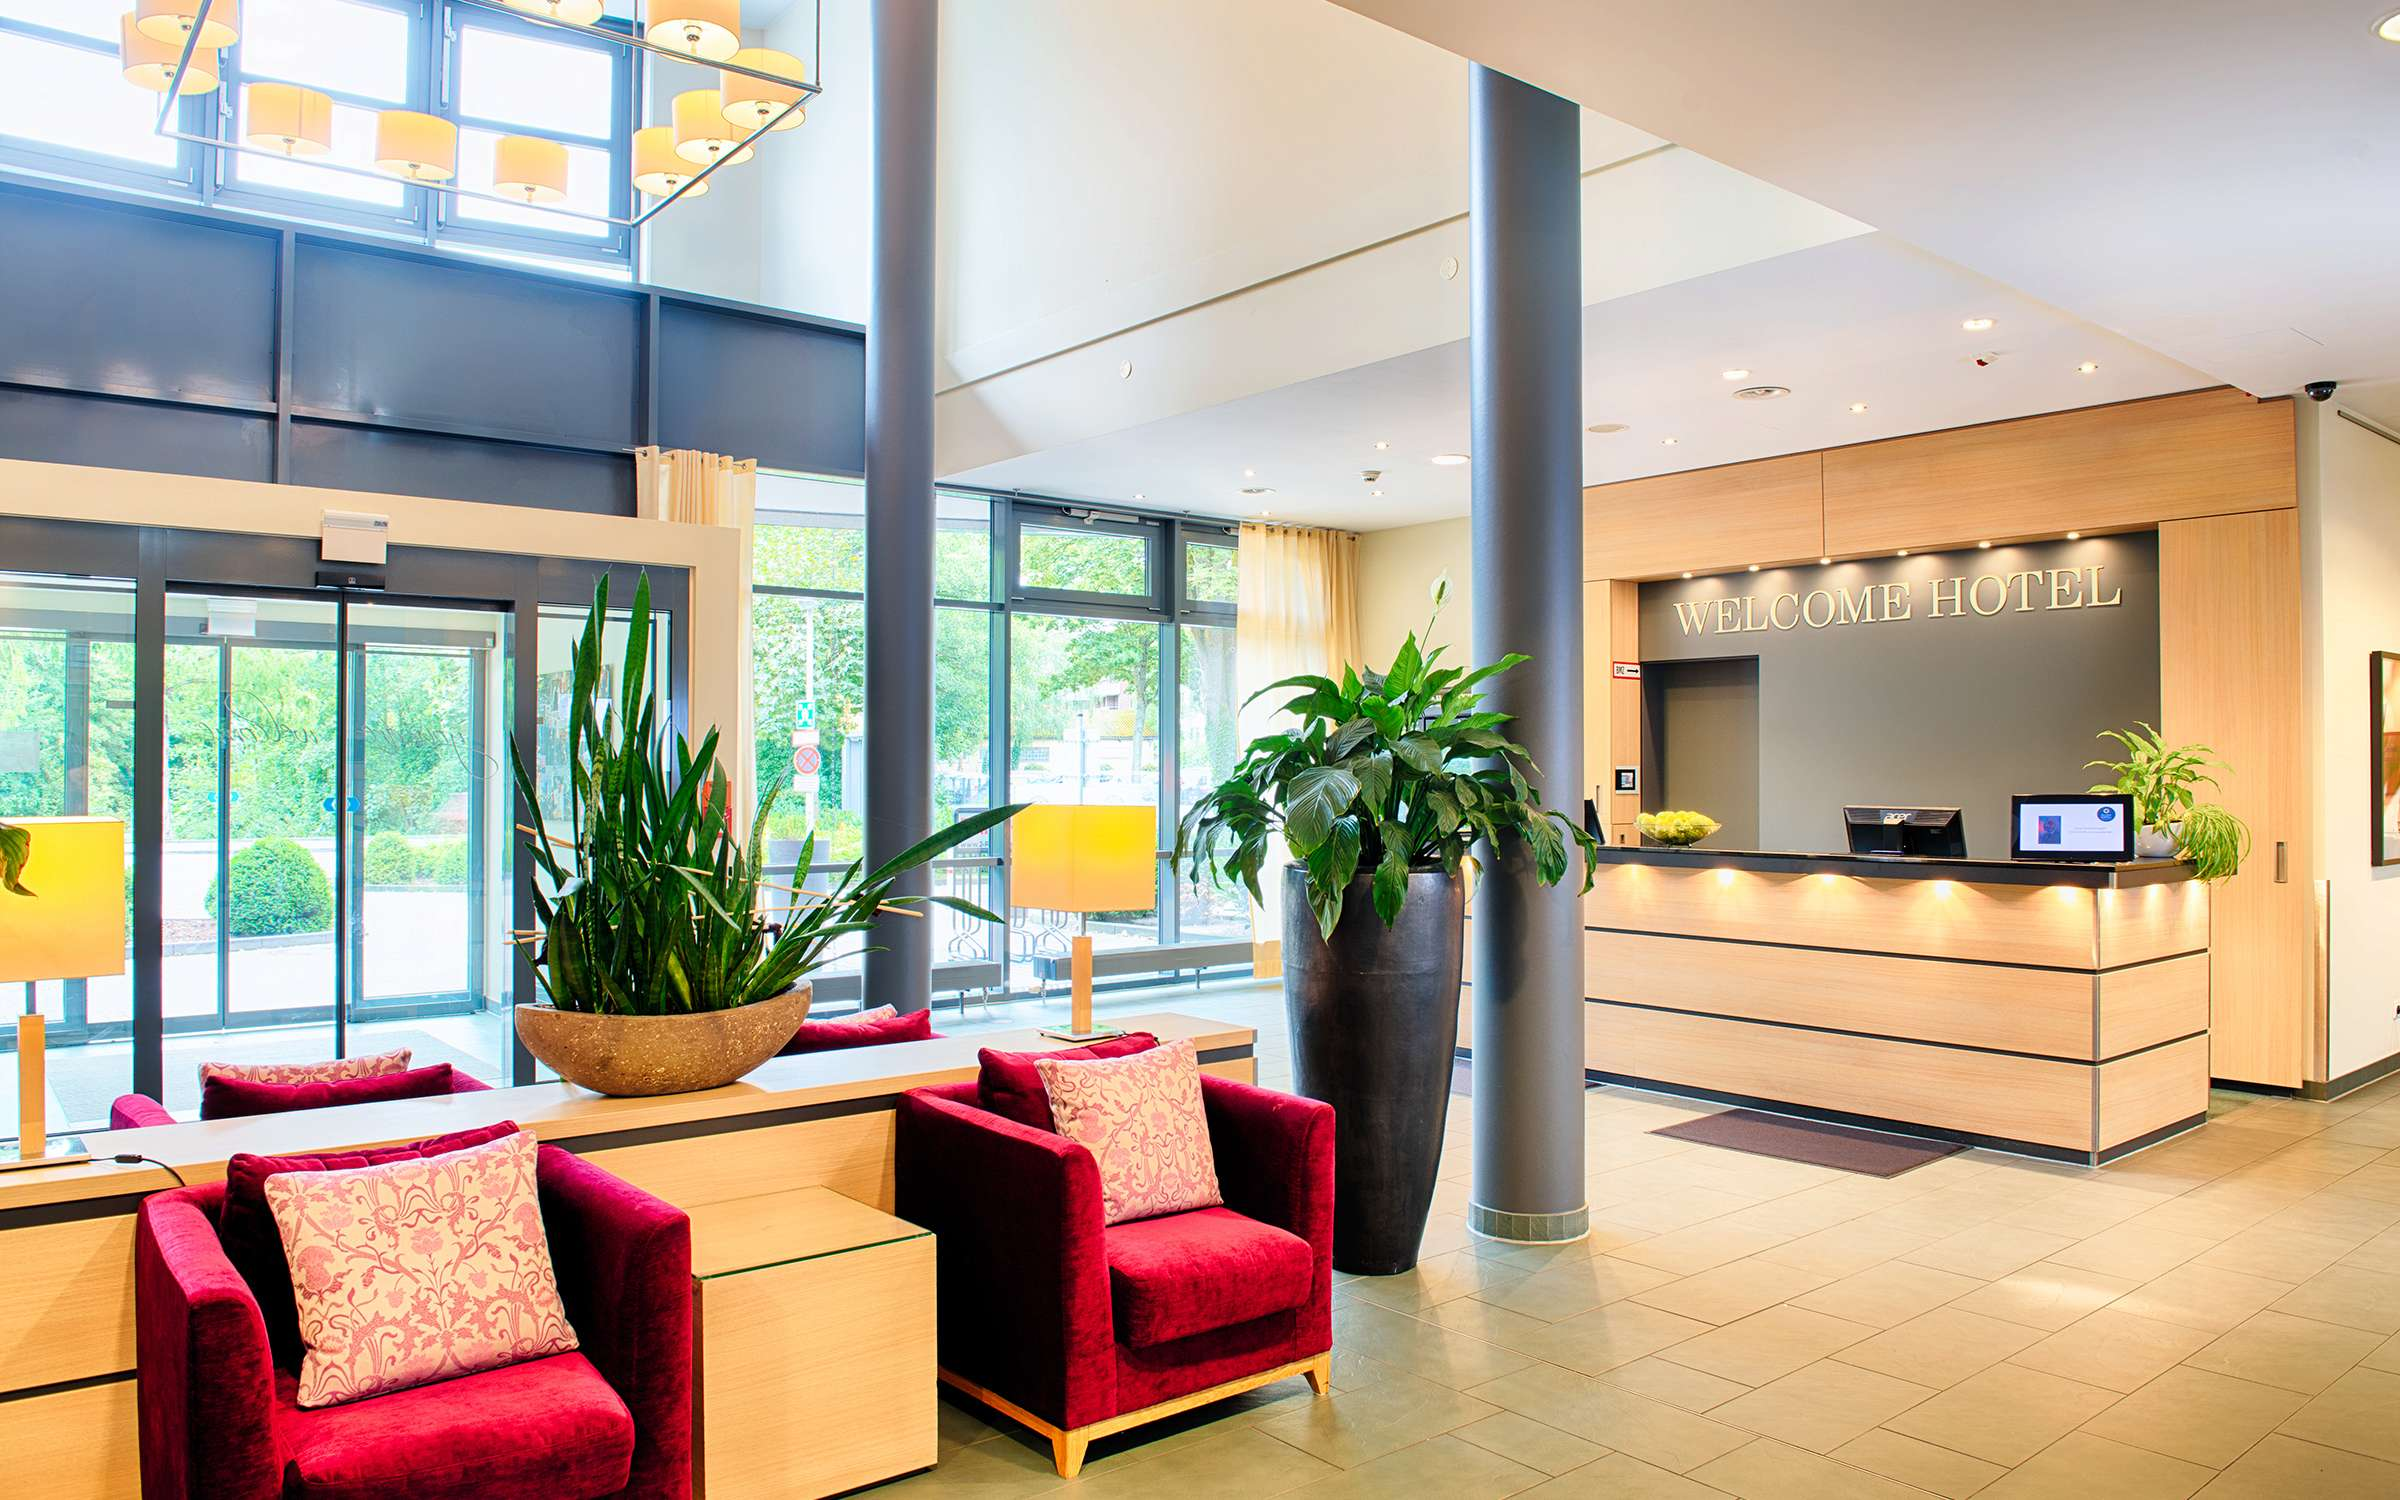 Welcome Hotel Paderborn Lobby 1